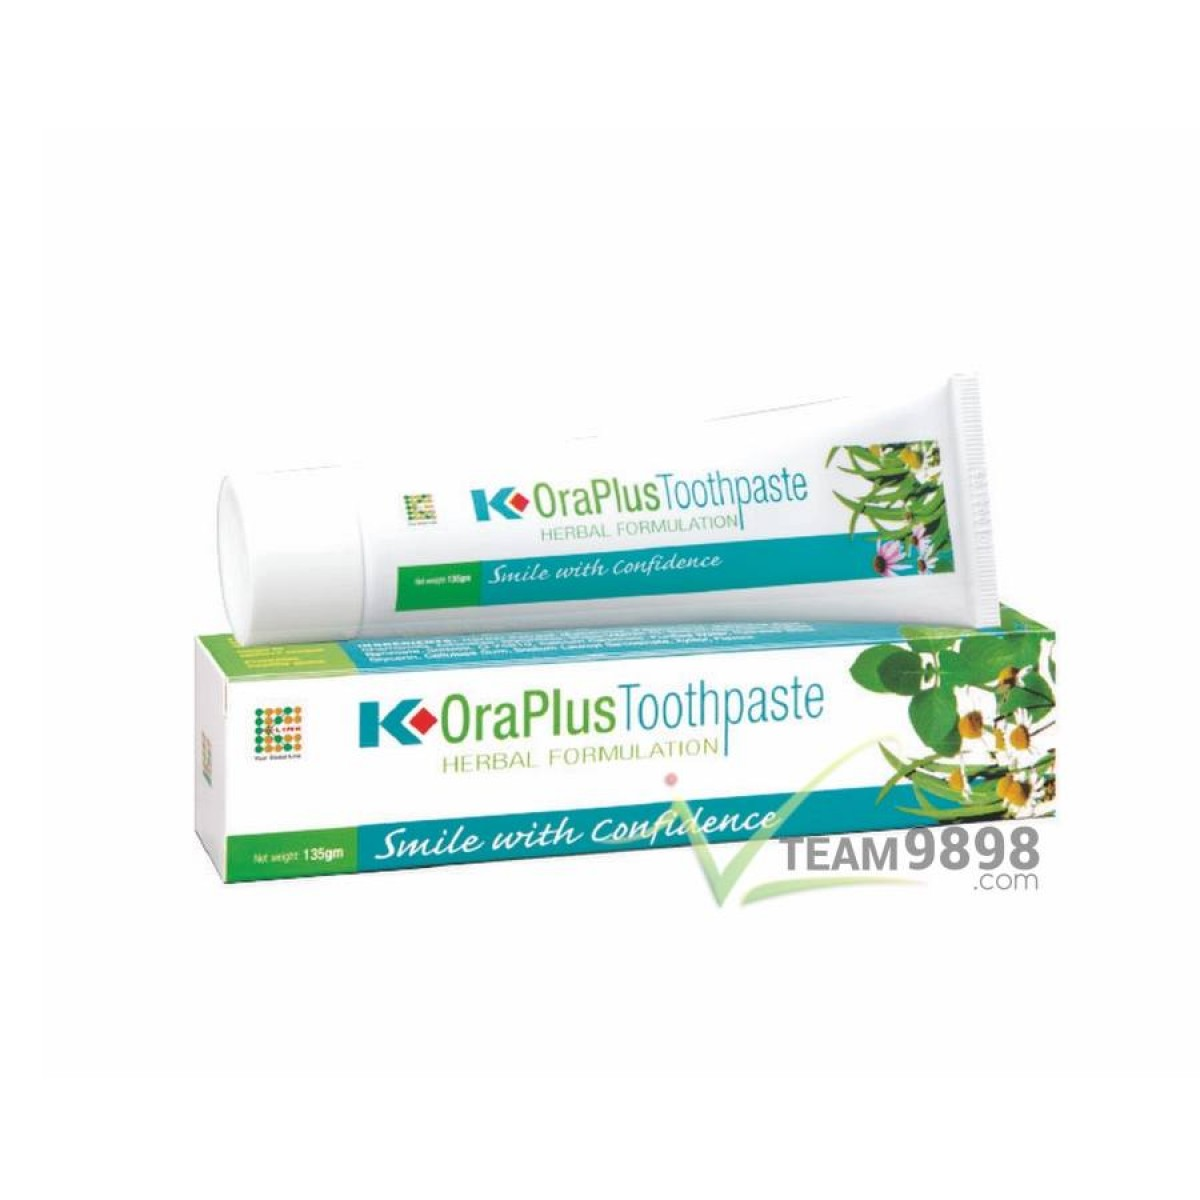 K-OraPlus Herbal Toothpaste